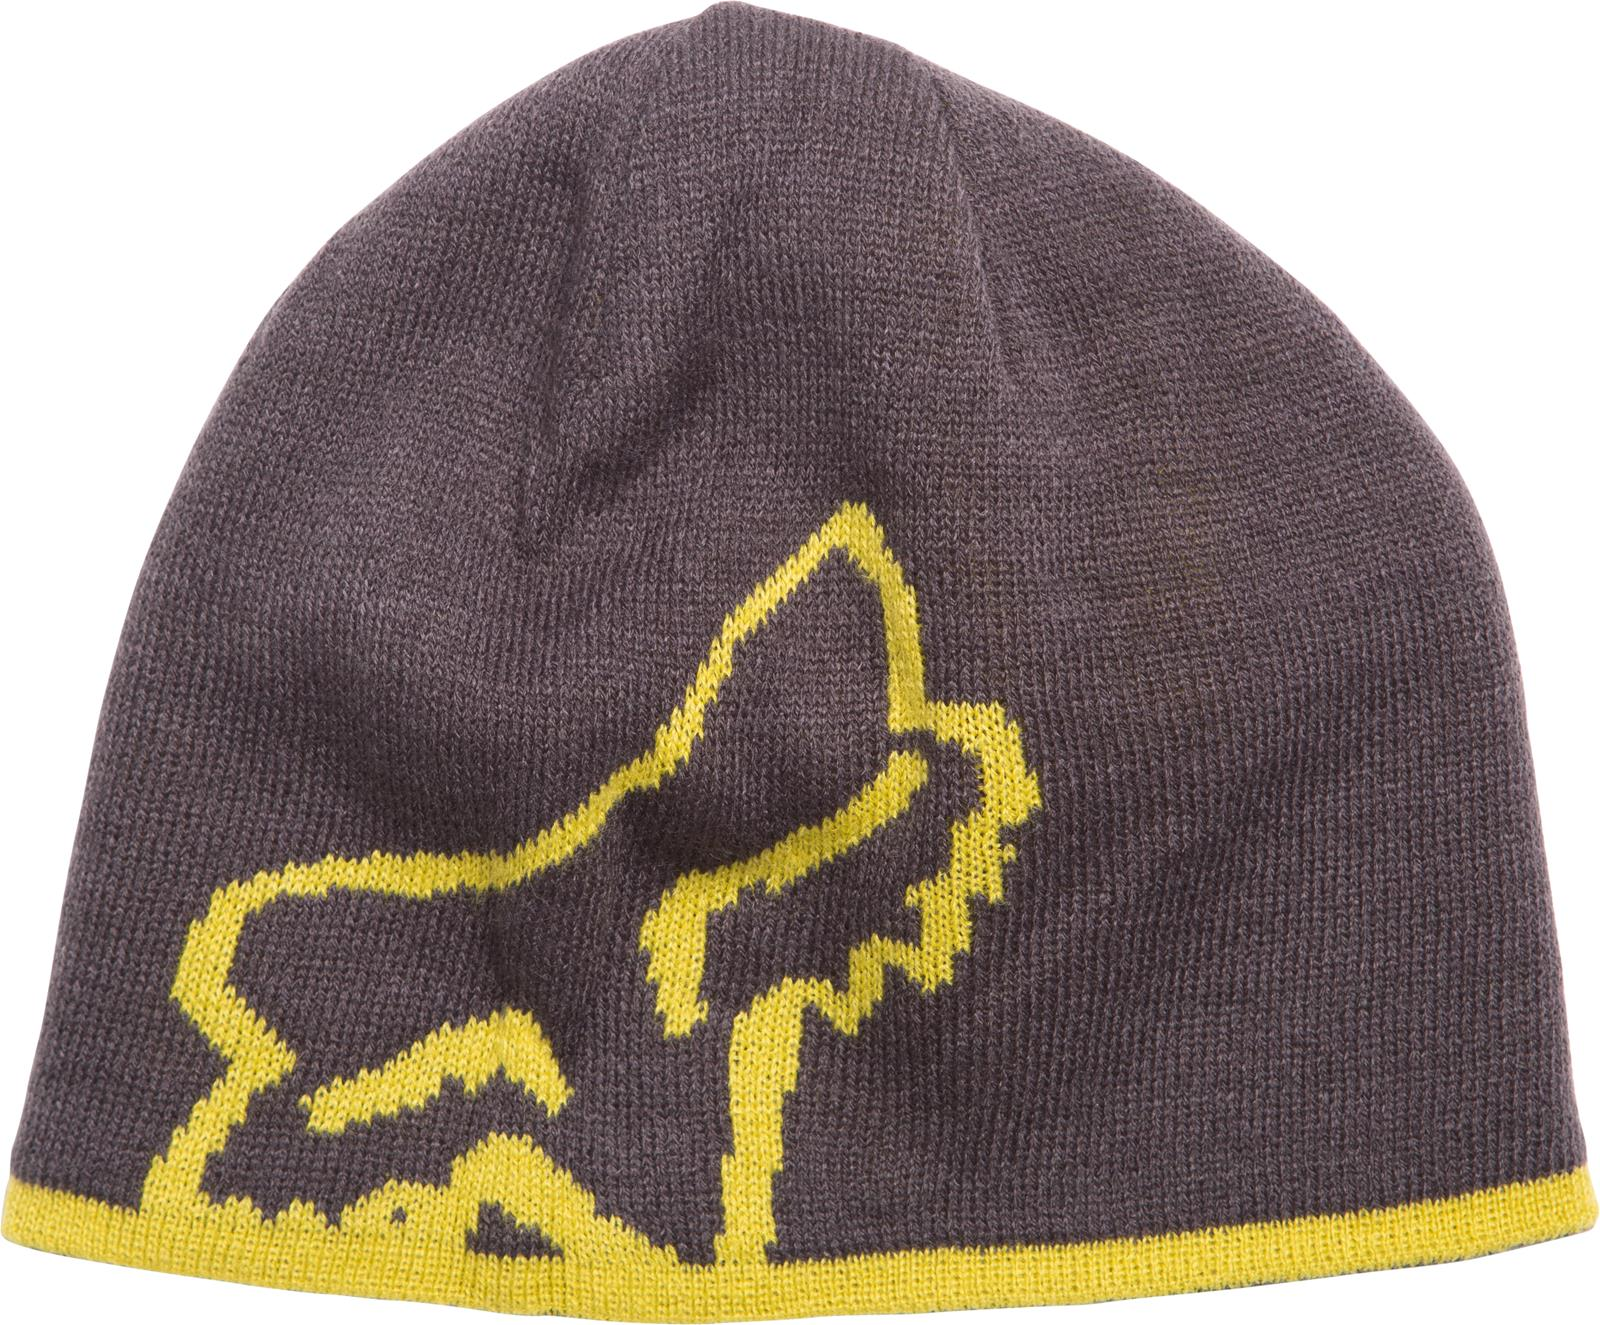 e5ccb895cc9 Fox Racing Streamliner Reversible Beanies 20790-587-OS - Free Shipping on  Orders Over  99 at Summit Racing